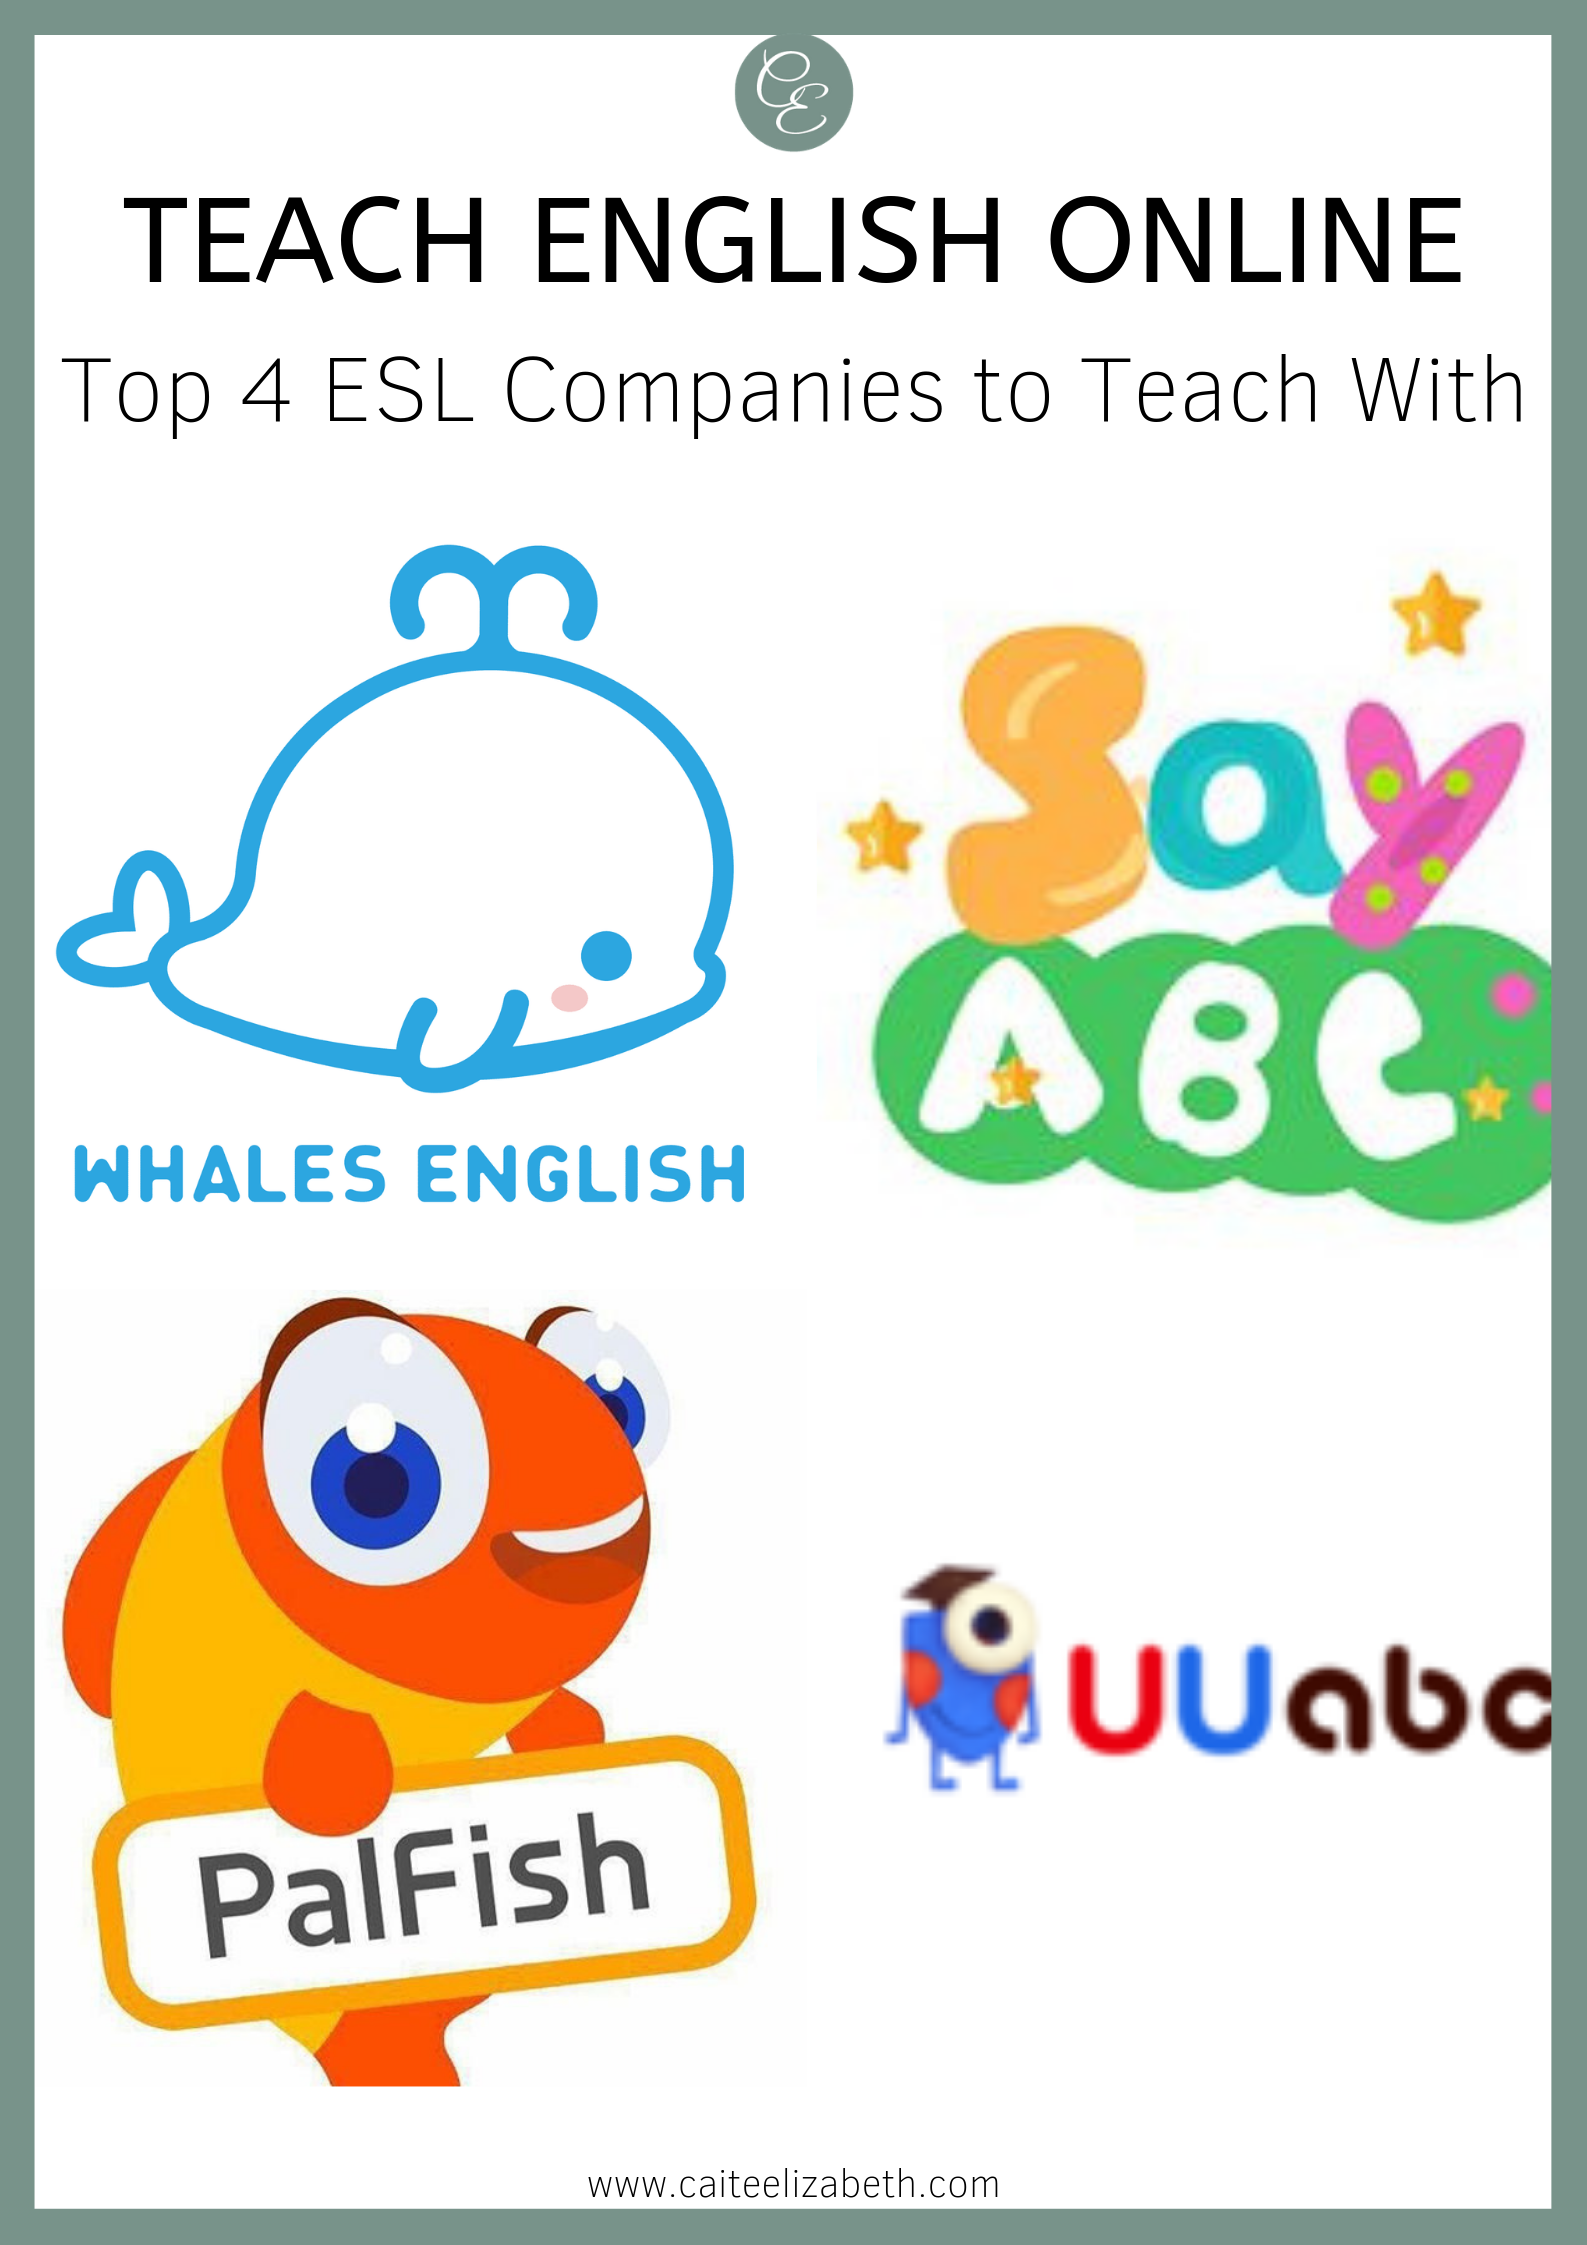 graphic of 4 different online ESL companies' logos. Whales English, SayABC, PalFish, UUabc